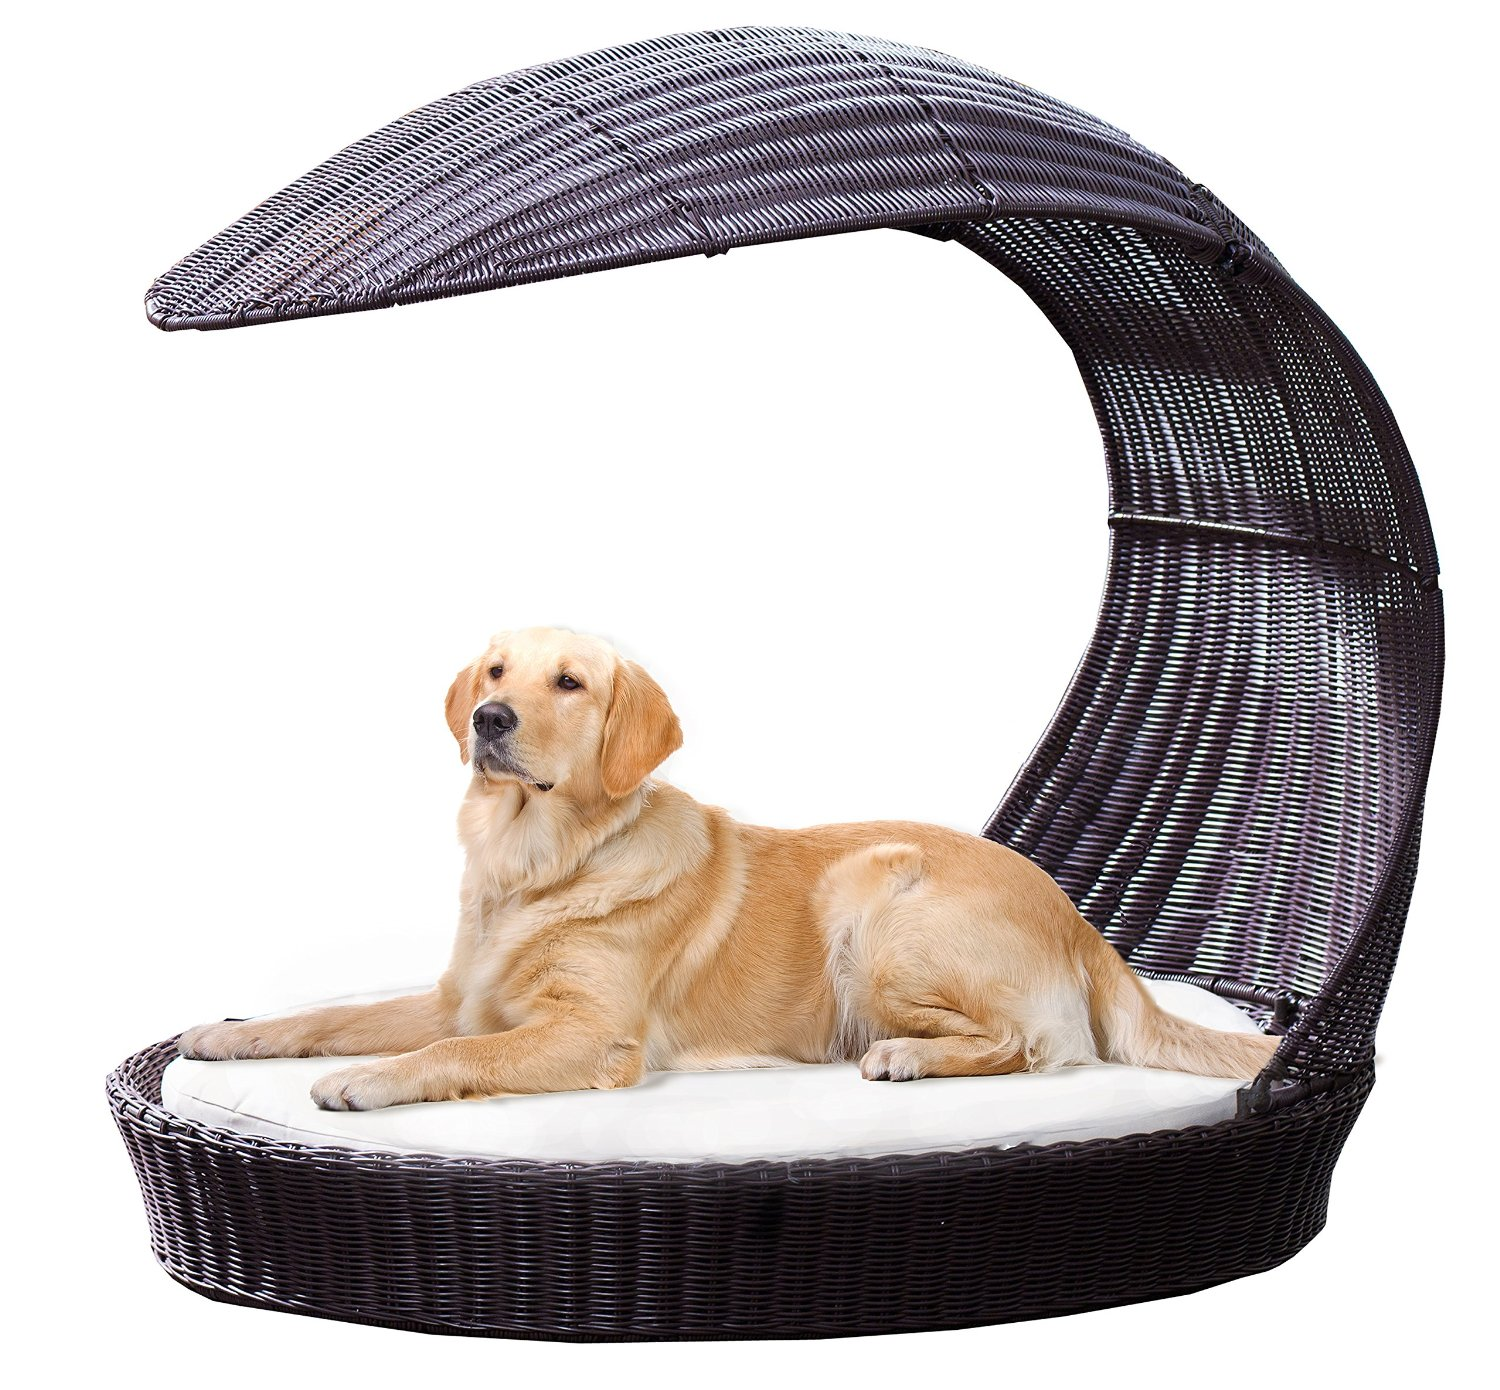 The Best Luxury And Fancy Dog Beds In 2019 Dogs Recommend